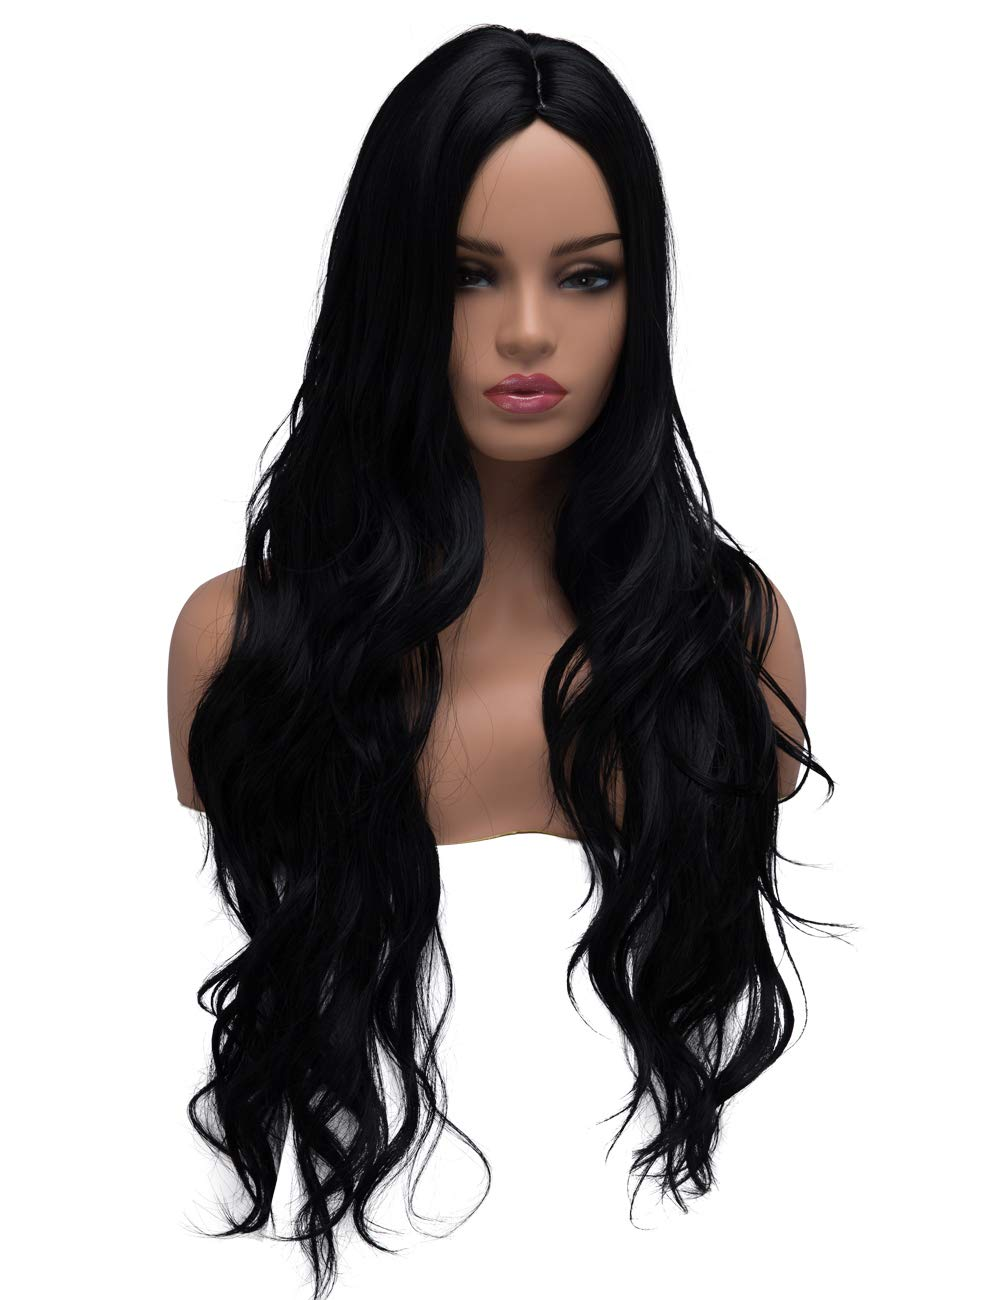 Amazon.com   BESTUNG Long Curly Wavy Wigs for Women Ladies Synthetic Full  Hair Natural Black Brunette Wig with Middle Parting Bangs for Daily Wear  (Middle ... f5124d408